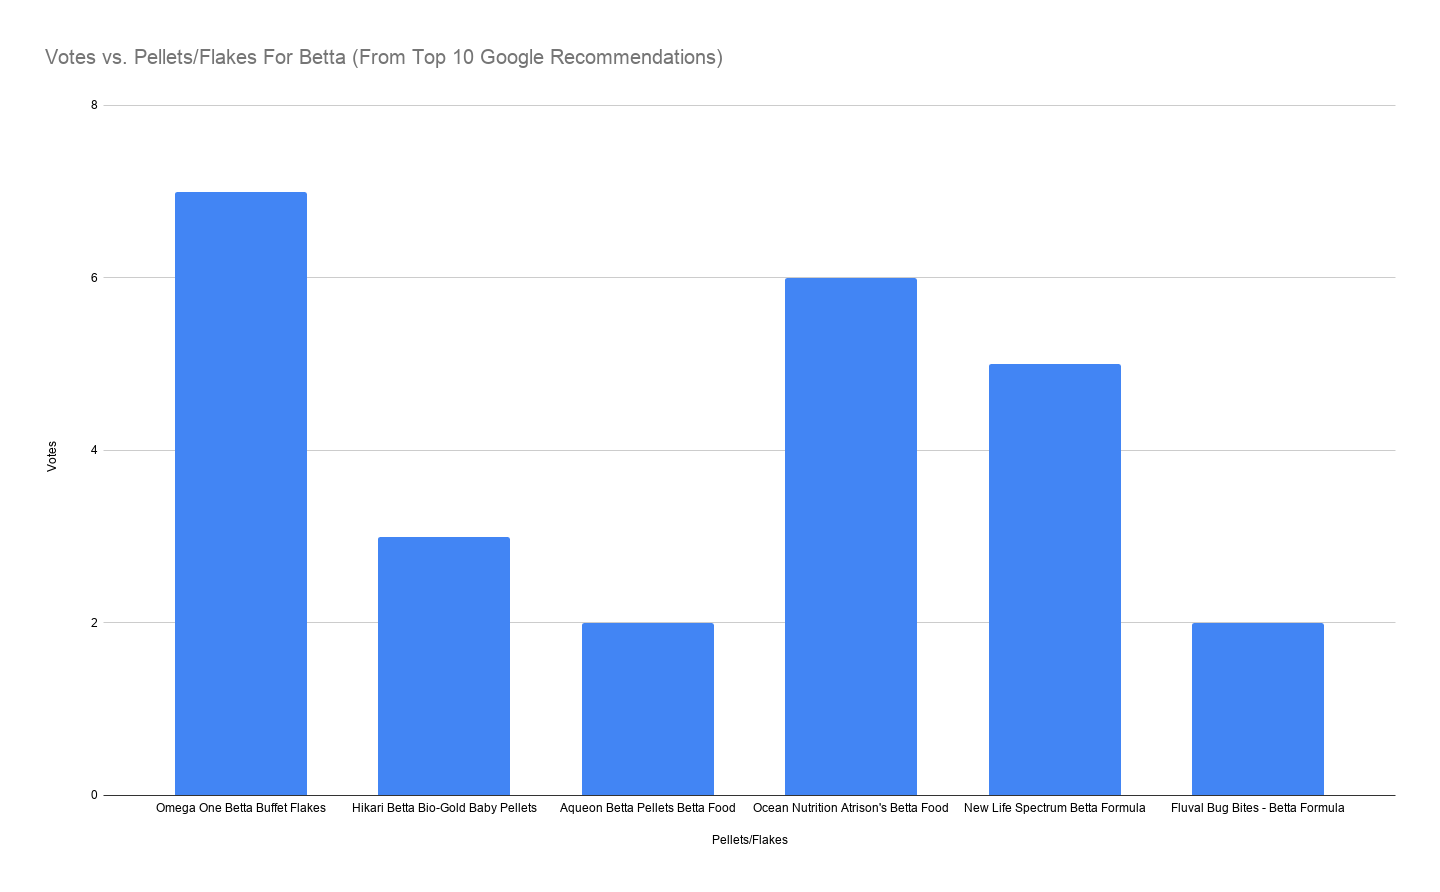 Votes vs. Pellets_Flakes For Betta (From Top 10 Google Recommendations)